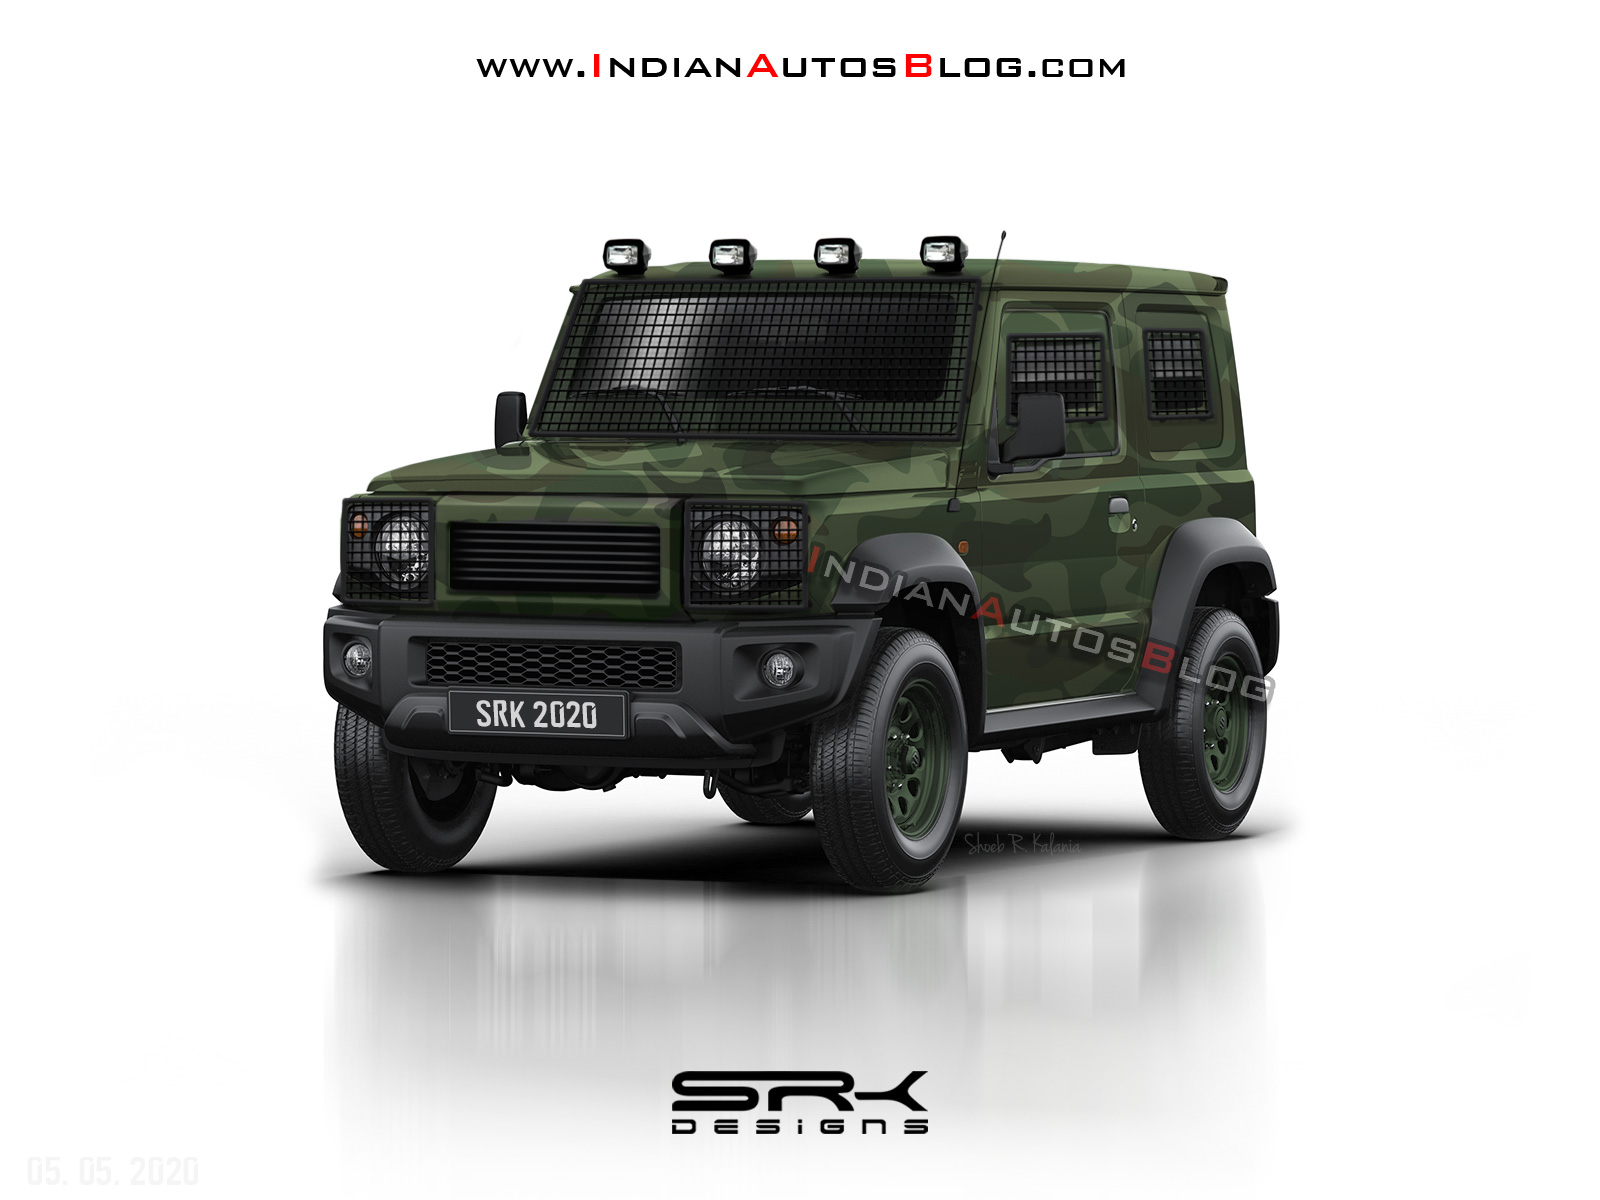 2021 Maruti Gypsy Army Variant Looks Ready To Patrol India S Borders Iab Rendering